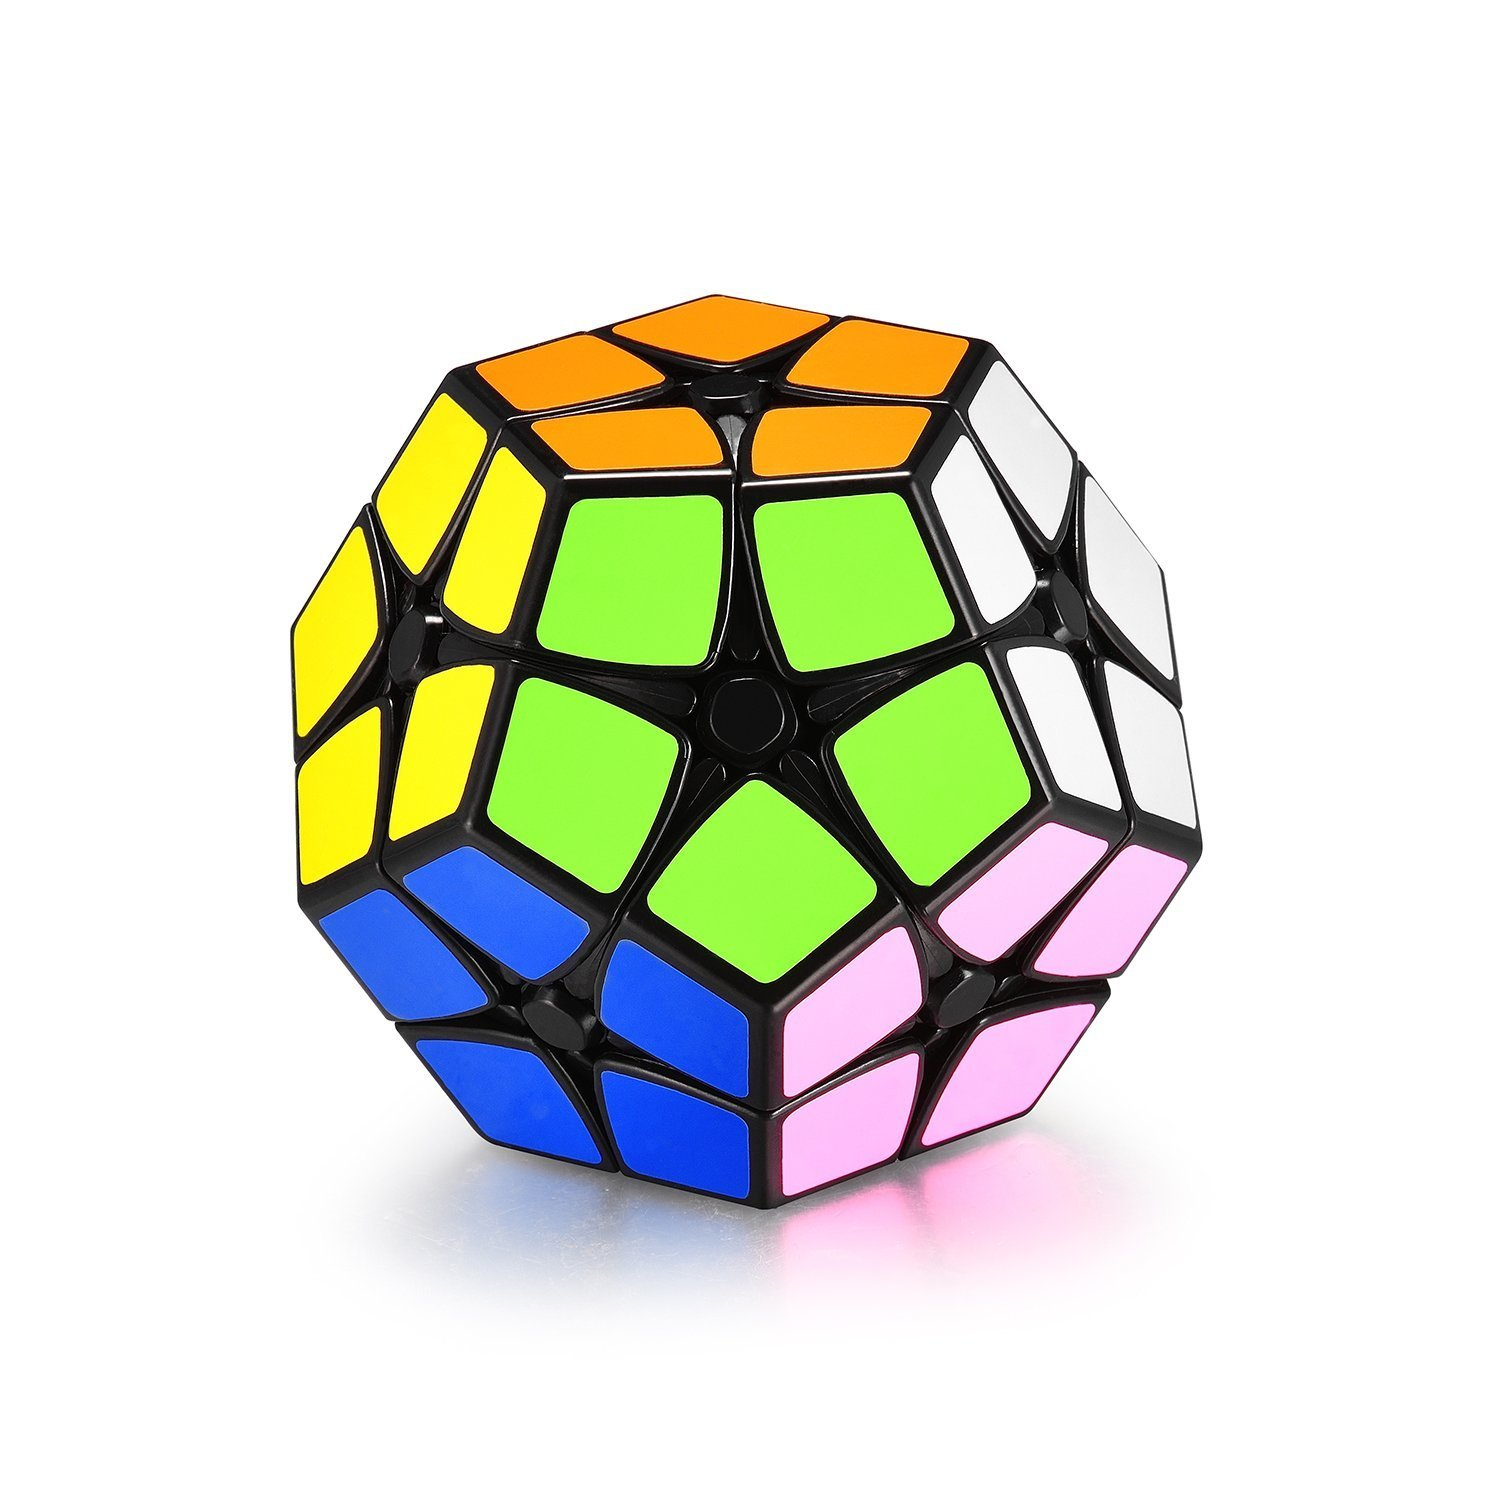 Speed Cube Set | Stickers Kilominx Cube | 2x2 3x3 Stickers Megaminx Cube Puzzle Pack | Smooth Dodecahedron Cube Toys with Cube Stand | Black